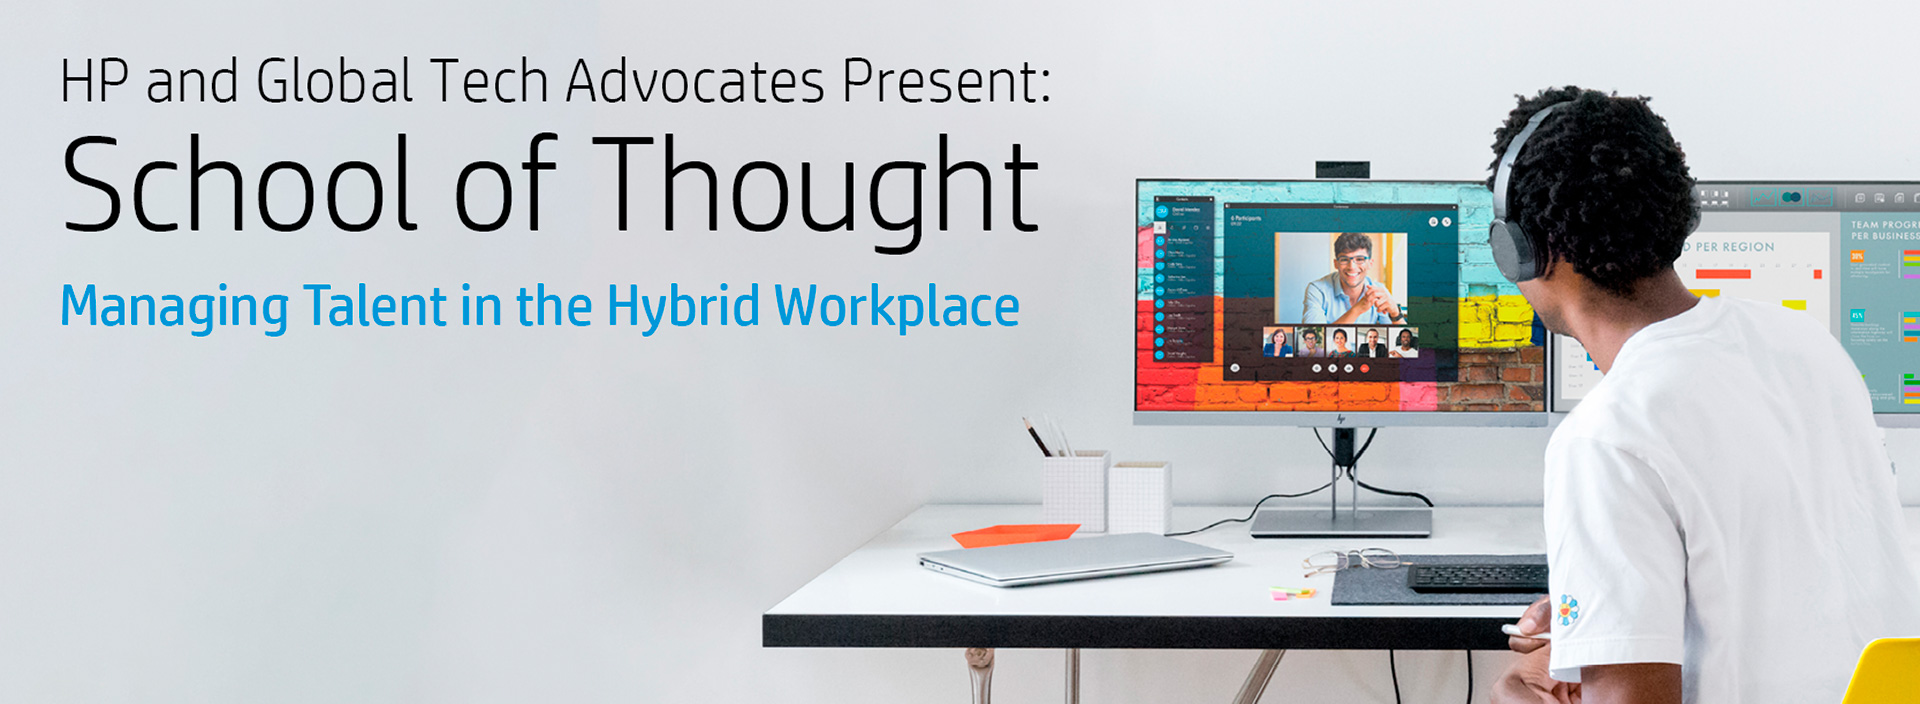 School of Thought webcast Series - Managing Talent in the Hybrid Workplace